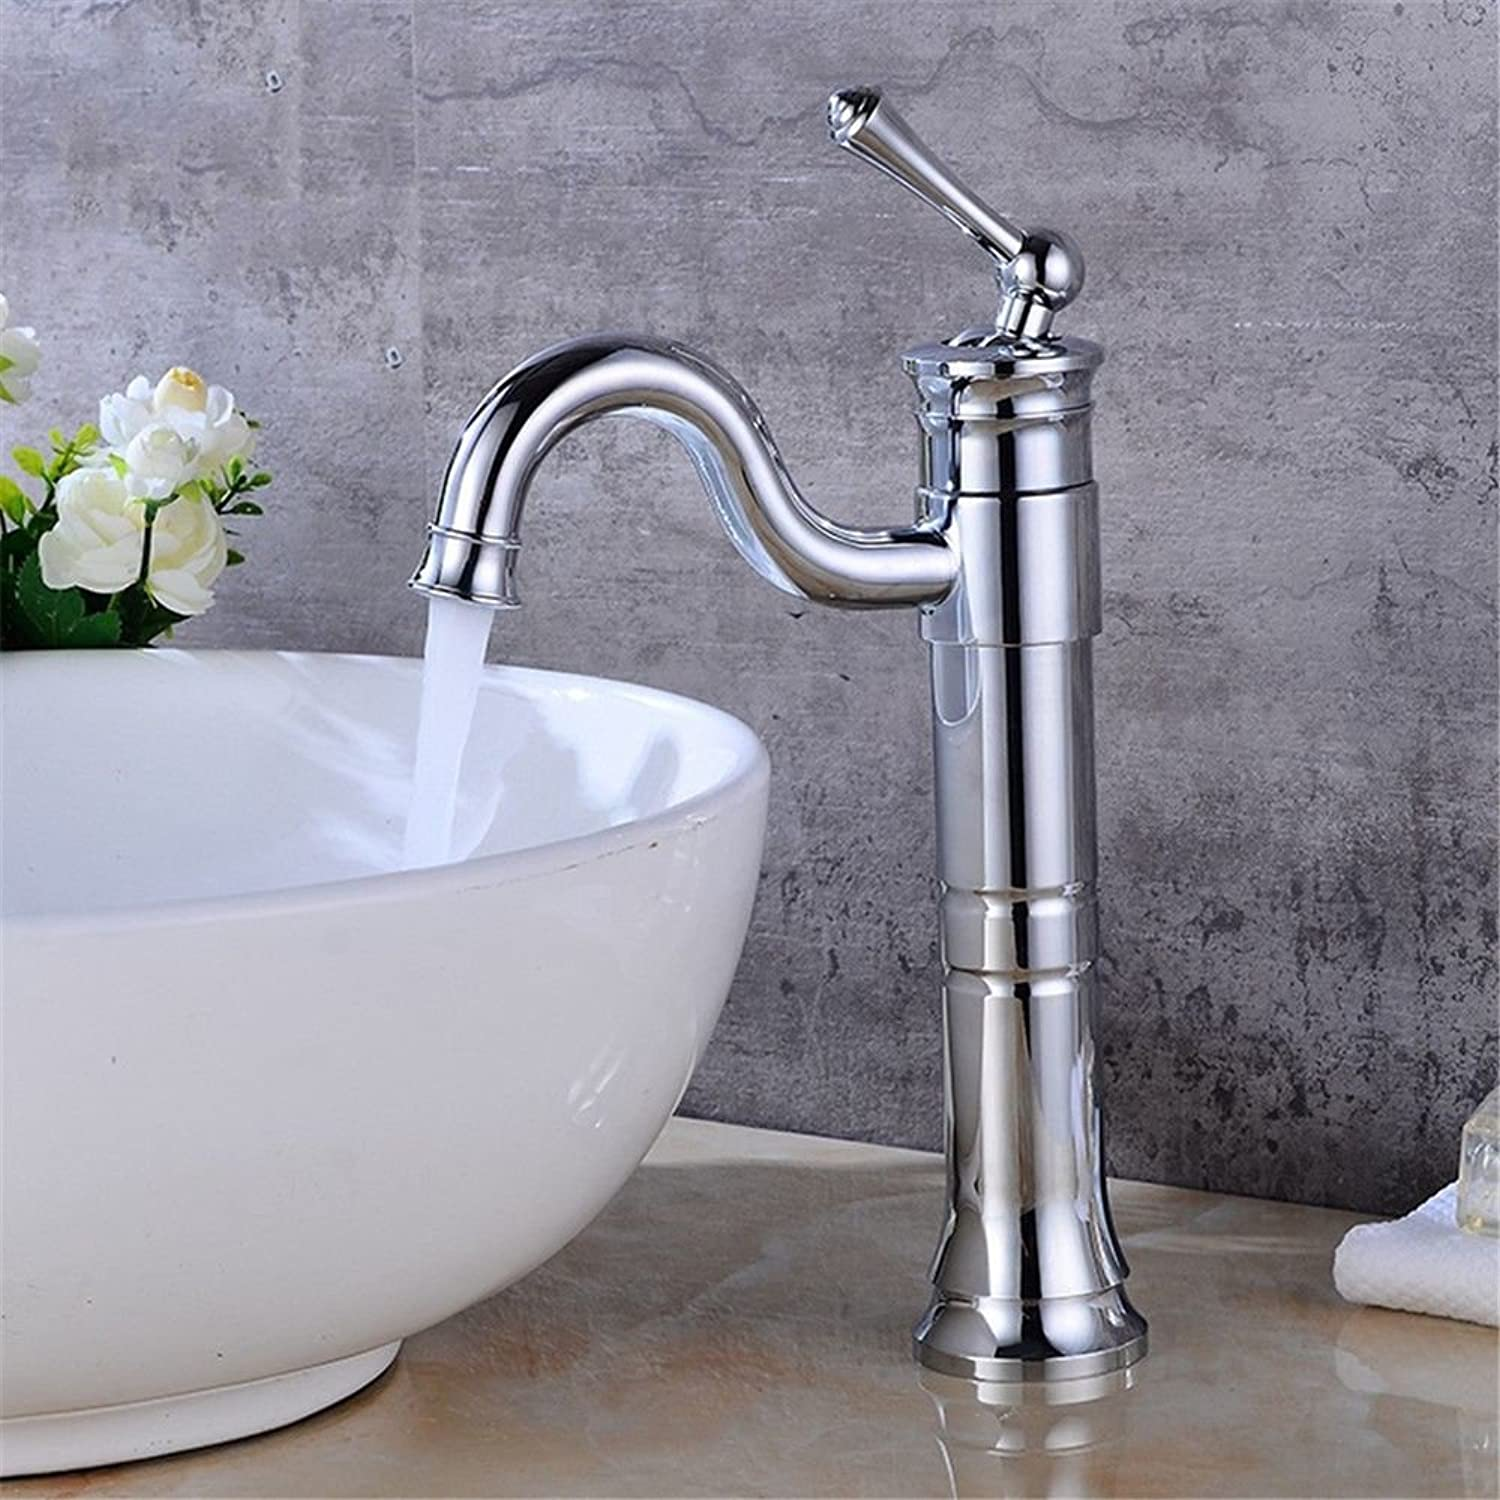 Kitchen Bath Basin Sink Mixer tap Faucet Tall Mixer tap Sink Faucet Tall Body Mixer taps Bathroom Kitchen Sink Basin Mixer tap